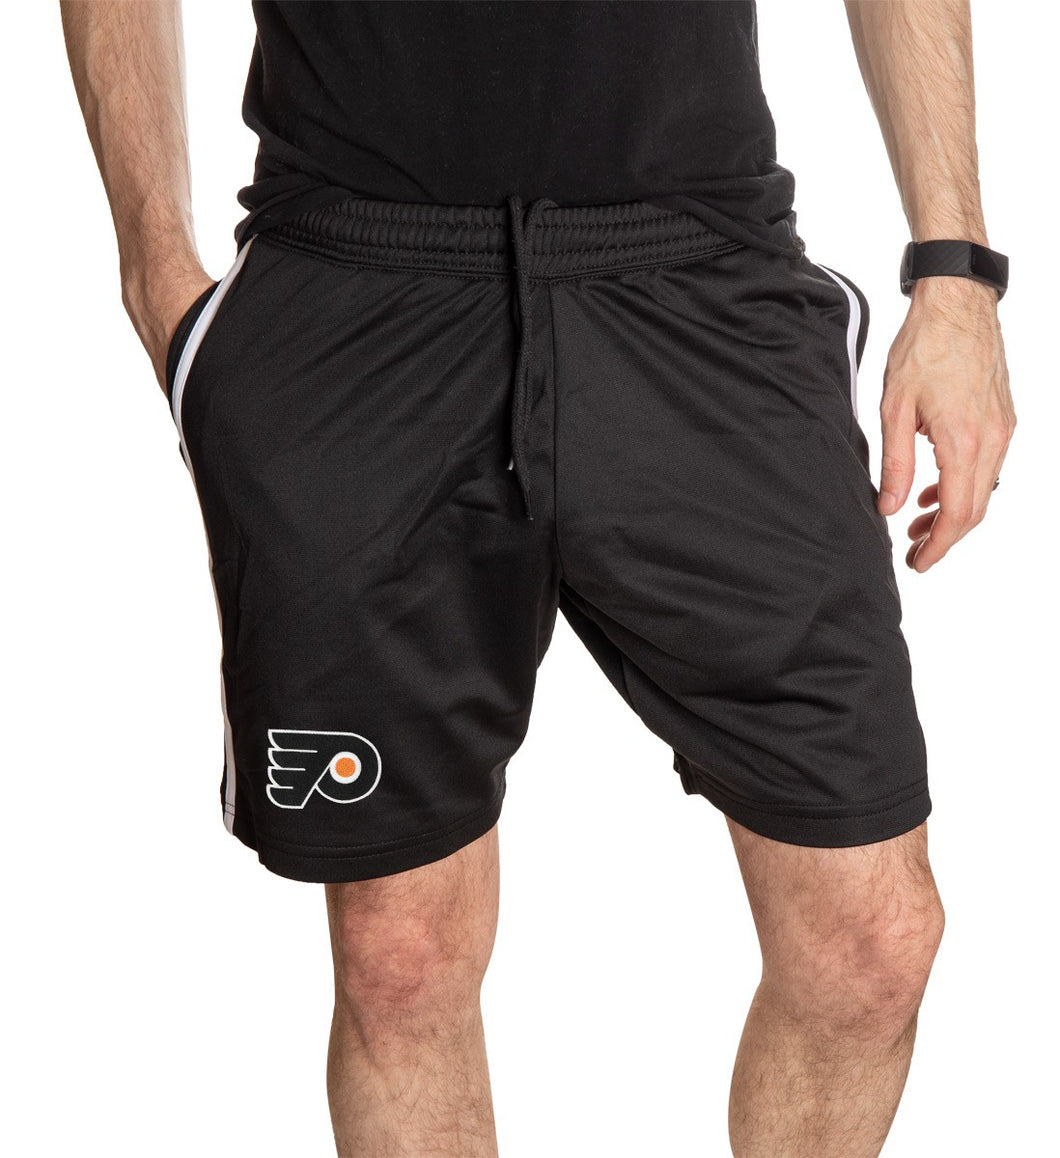 NHL Mens Official Team Two-Stripe Shorts- Philadelphia Flyers Full Length Front View With Man Hand In Pocket